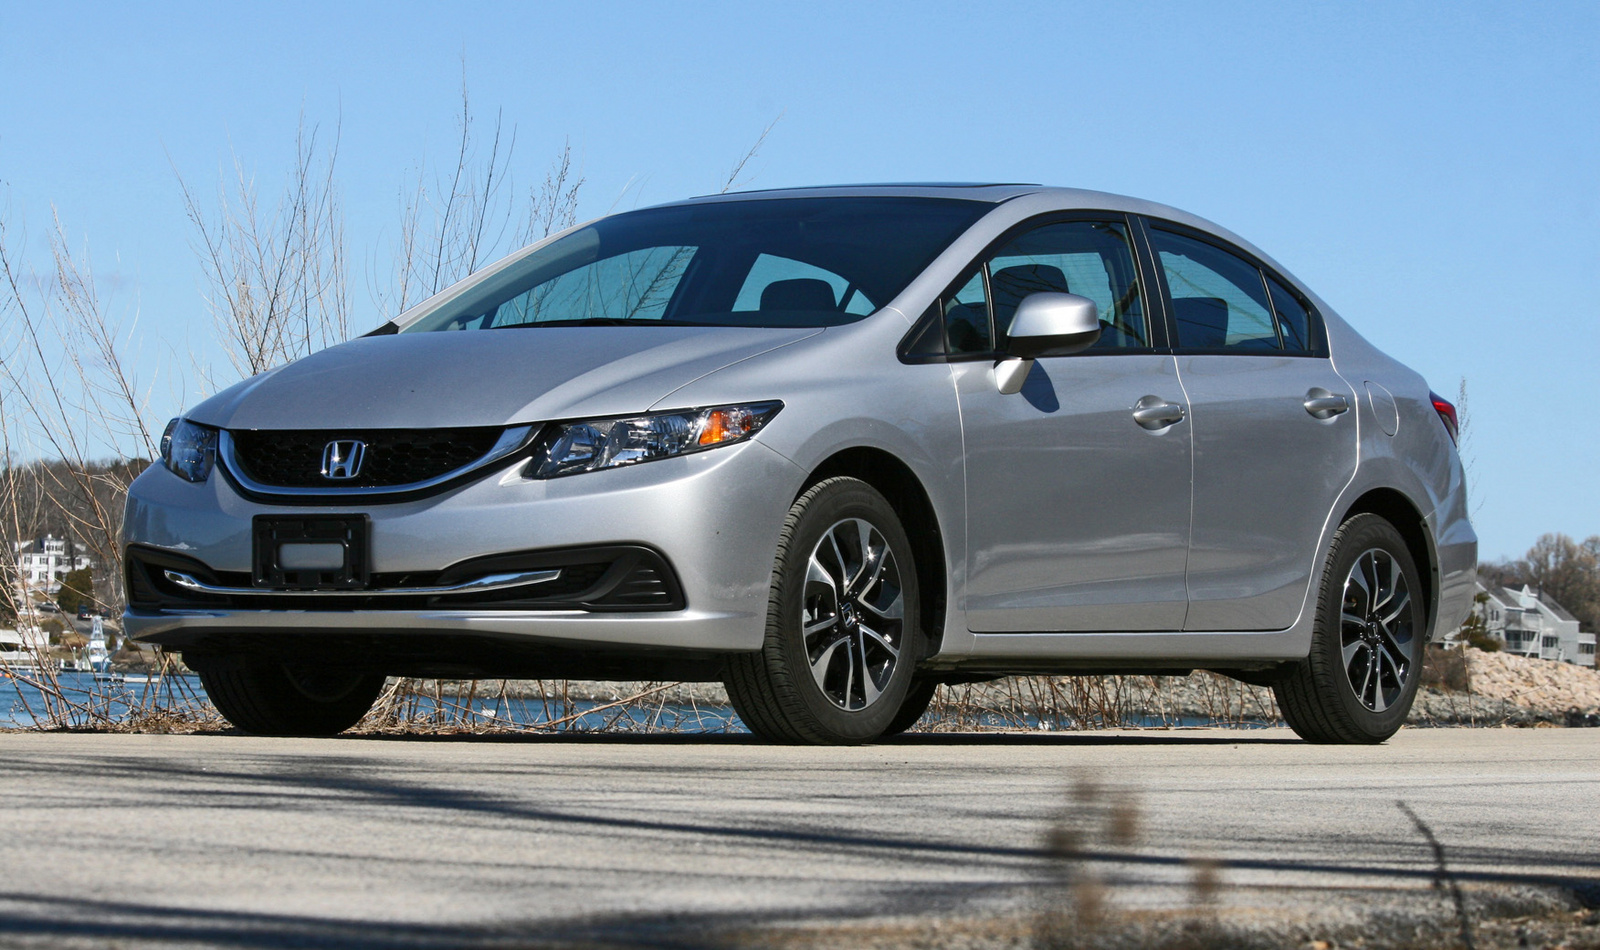 2013 Honda Civic, Front-quarter view, lead_in, exterior